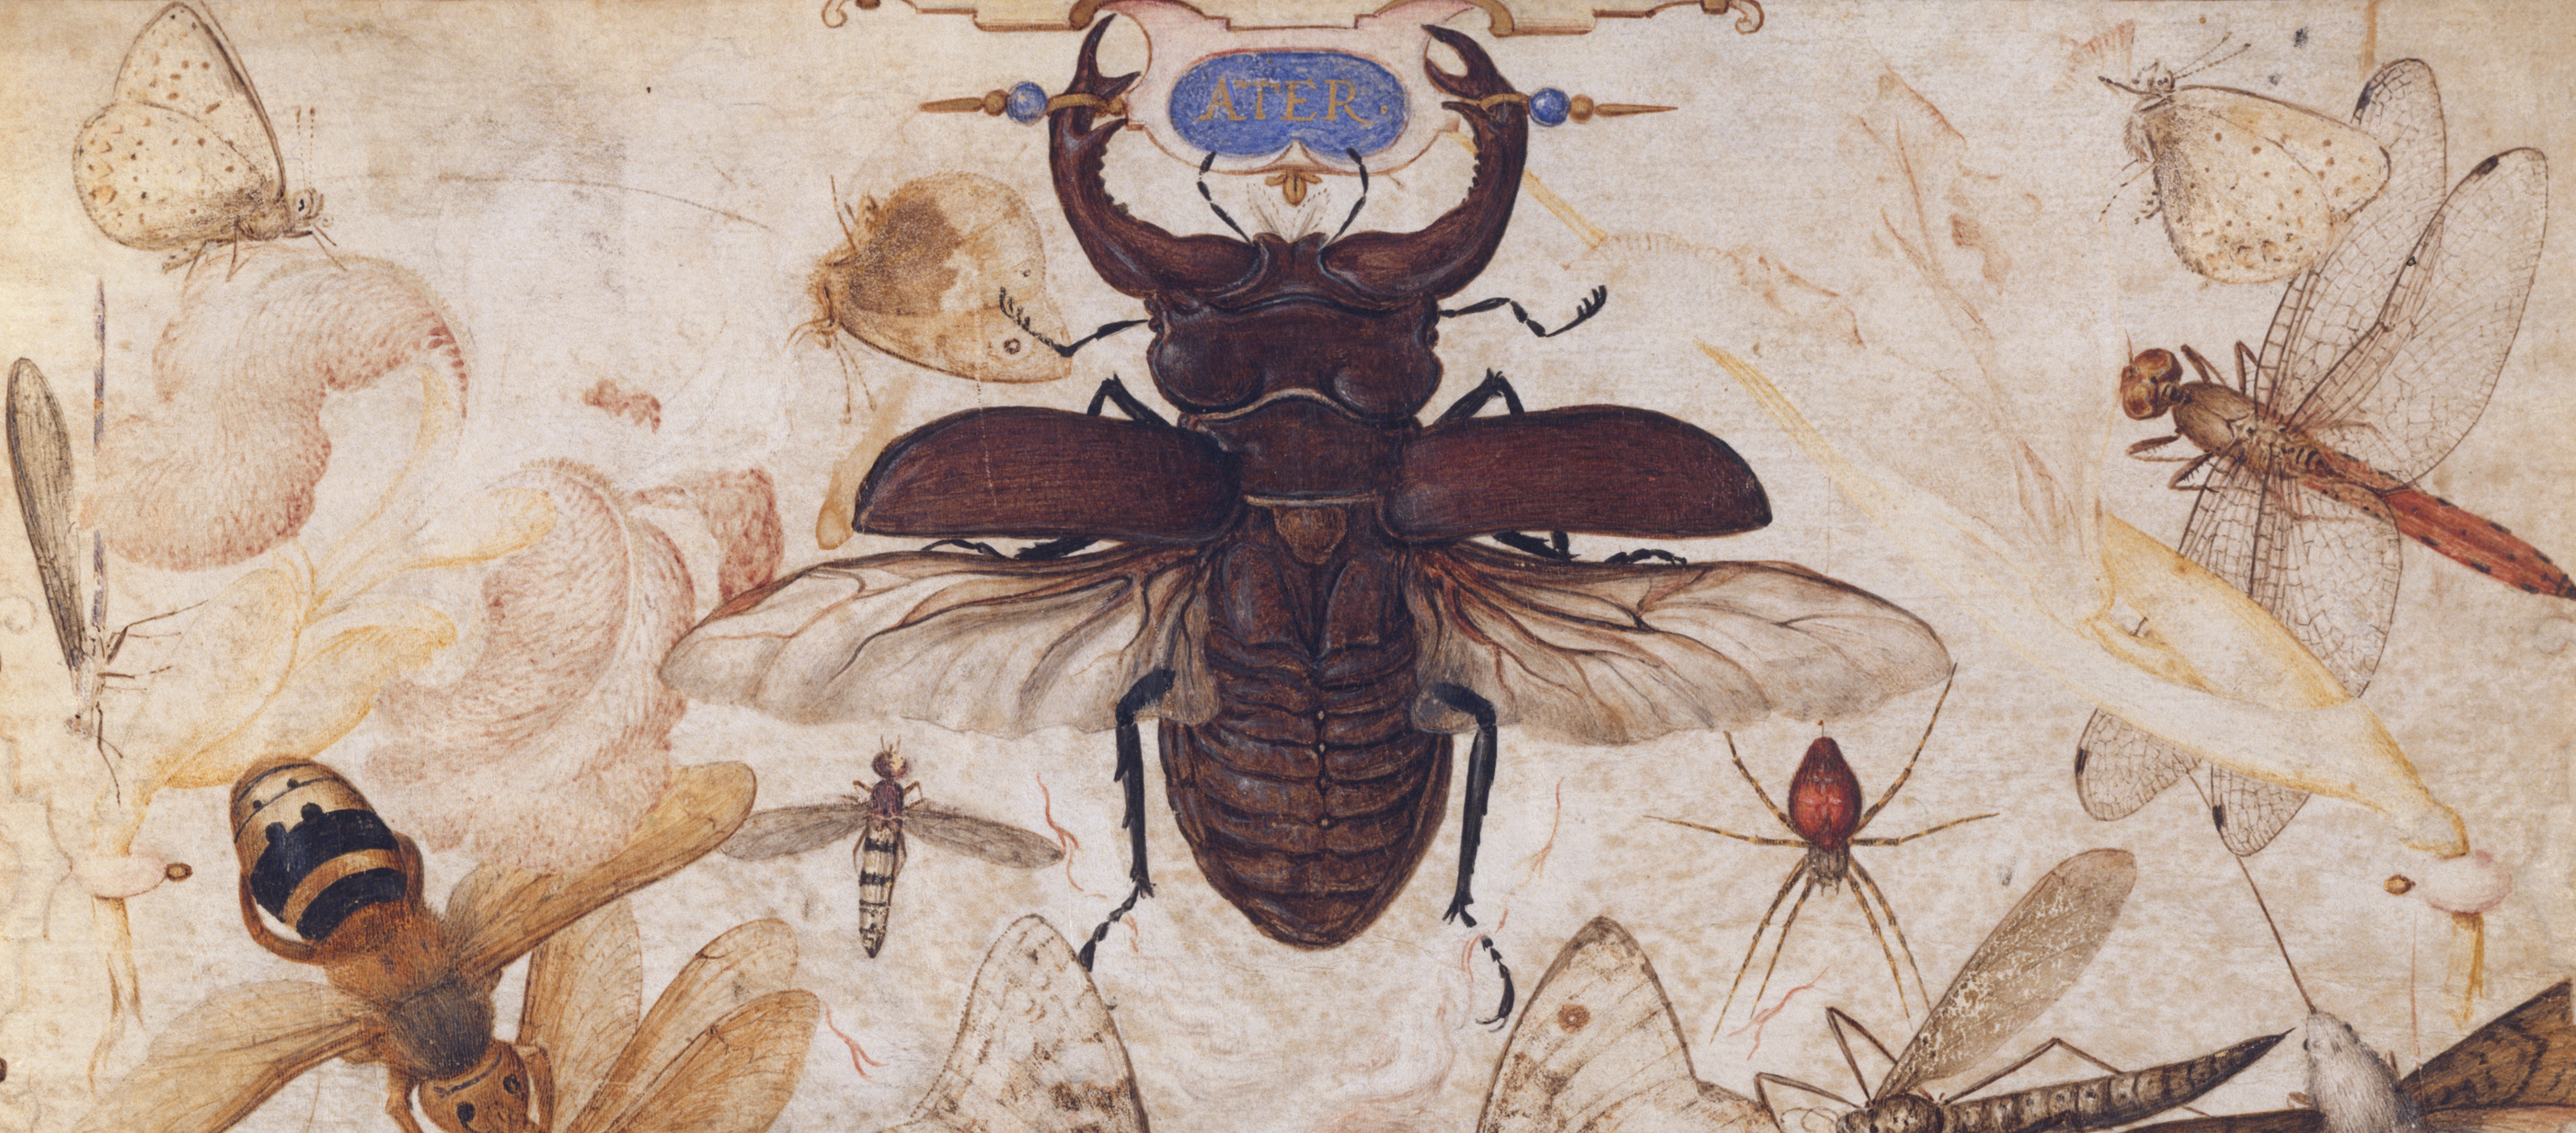 Insects and the Head of a Wind God, by Joris Hoefnagel, c. 1595.